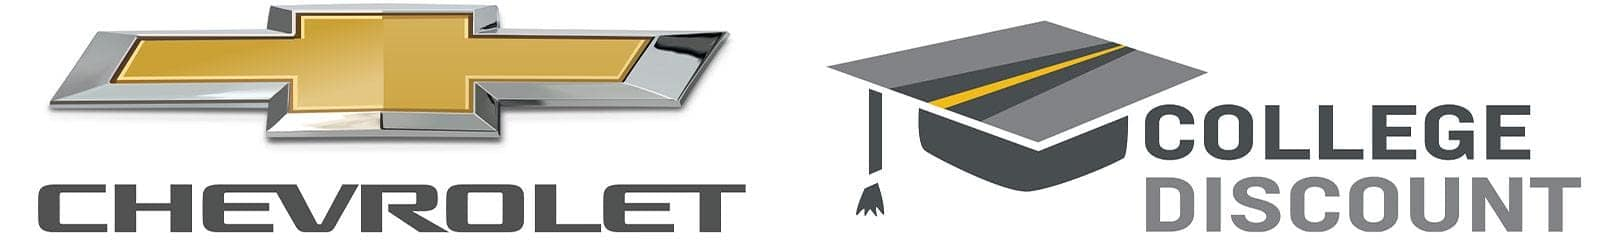 College-Discount-banner